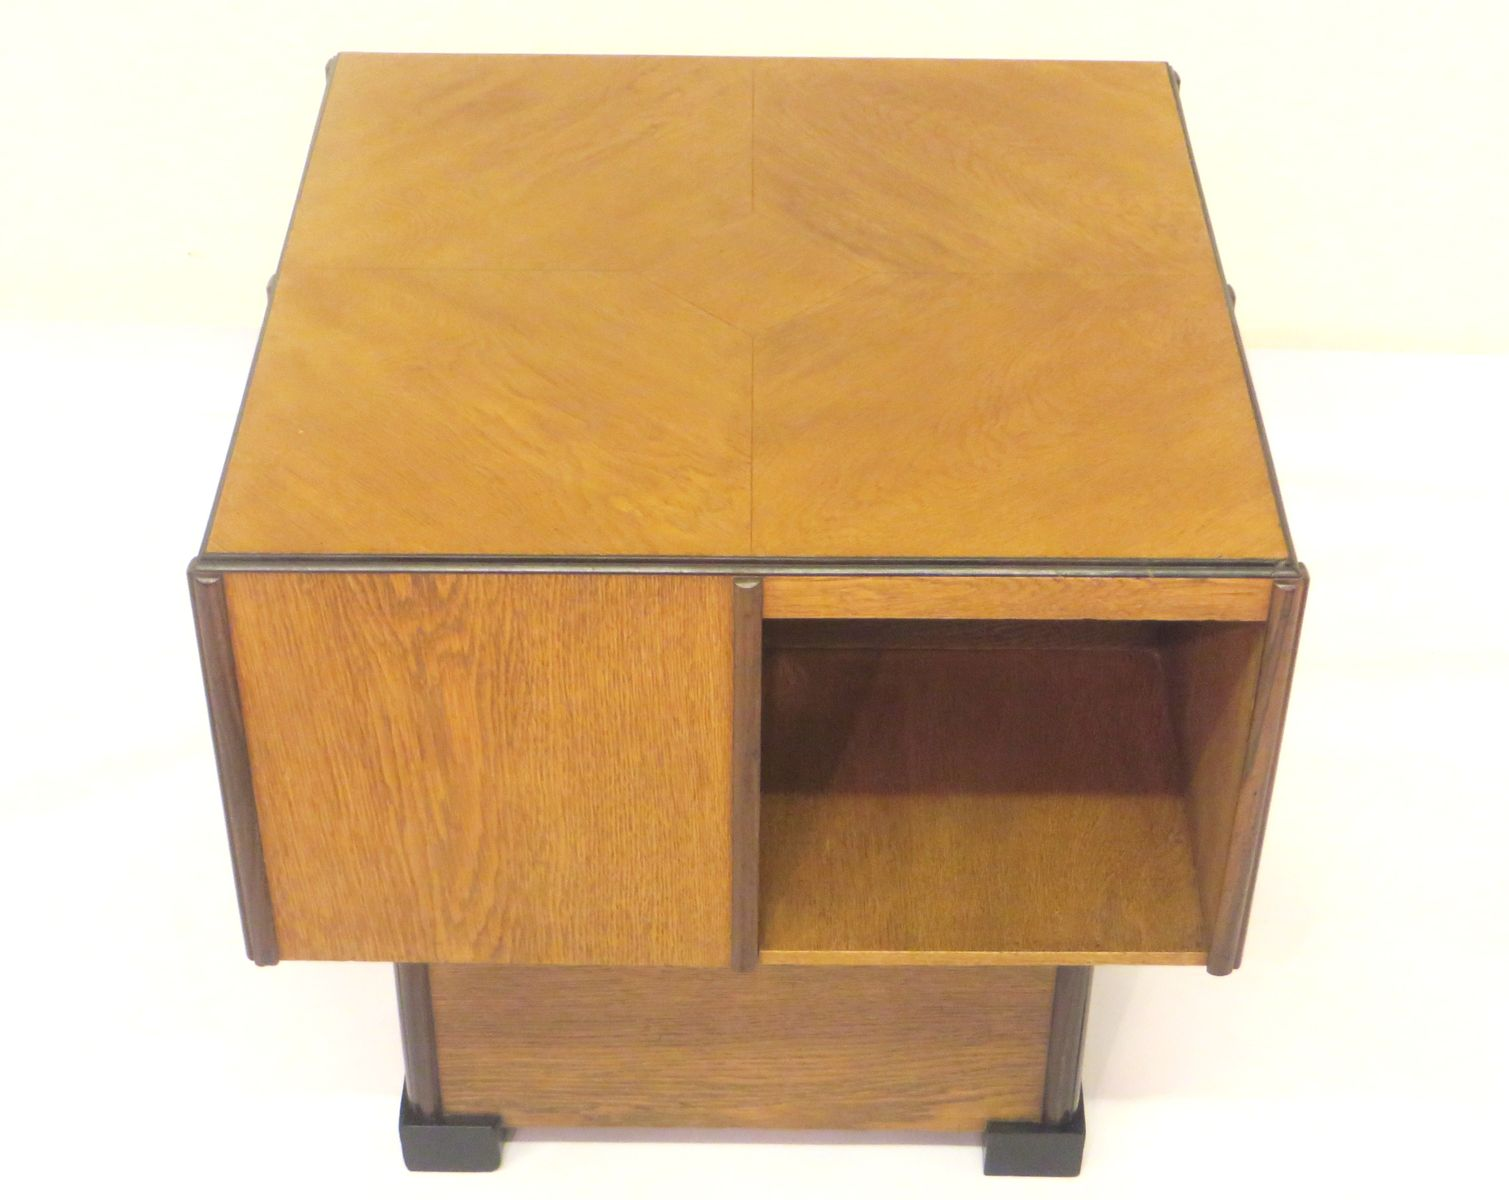 Oak Coffee Table With Bookshelves By U M S Pastoe 1930s